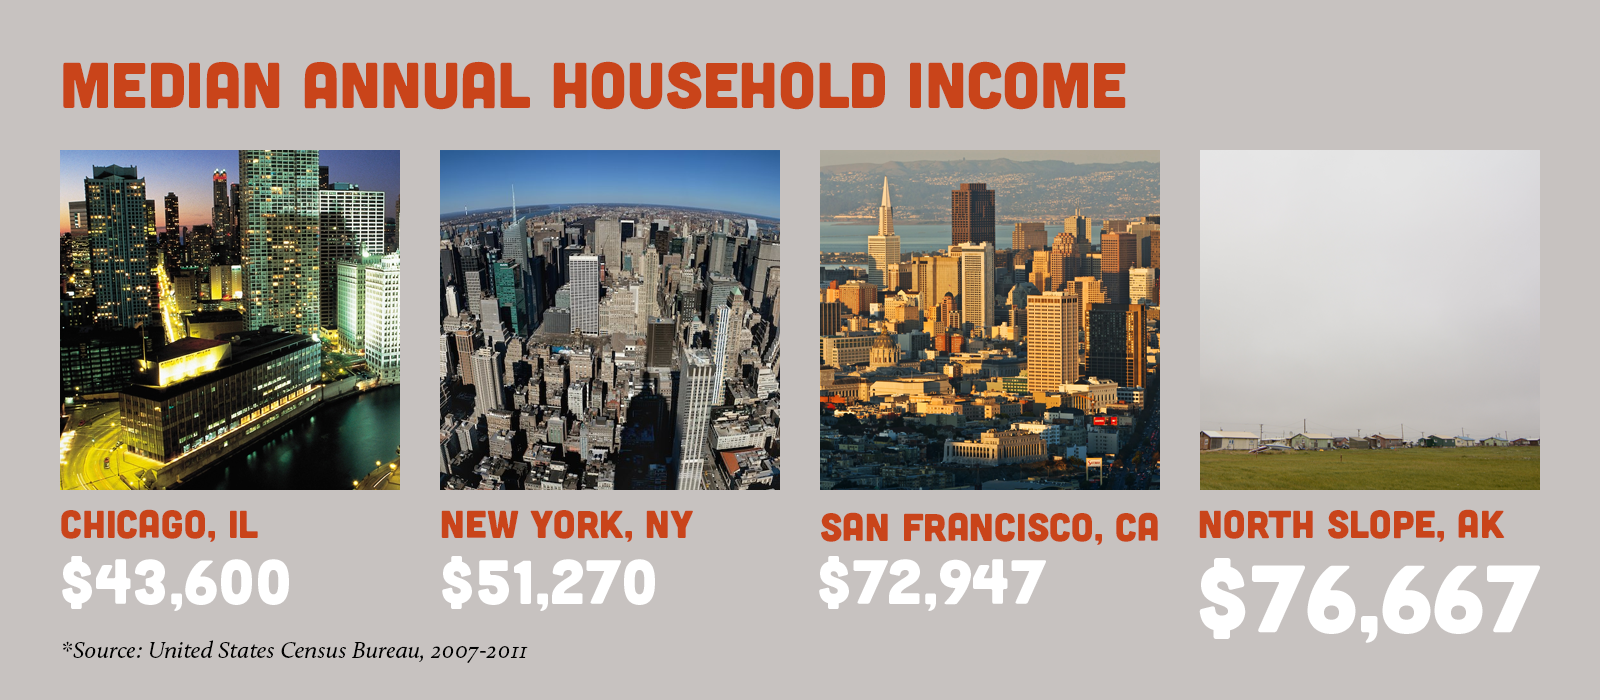 Chart comparing median annual household income in Chicago ($43,600), New York ($51,270), San Francisco ($72,947) and the North Slope ($76,667)